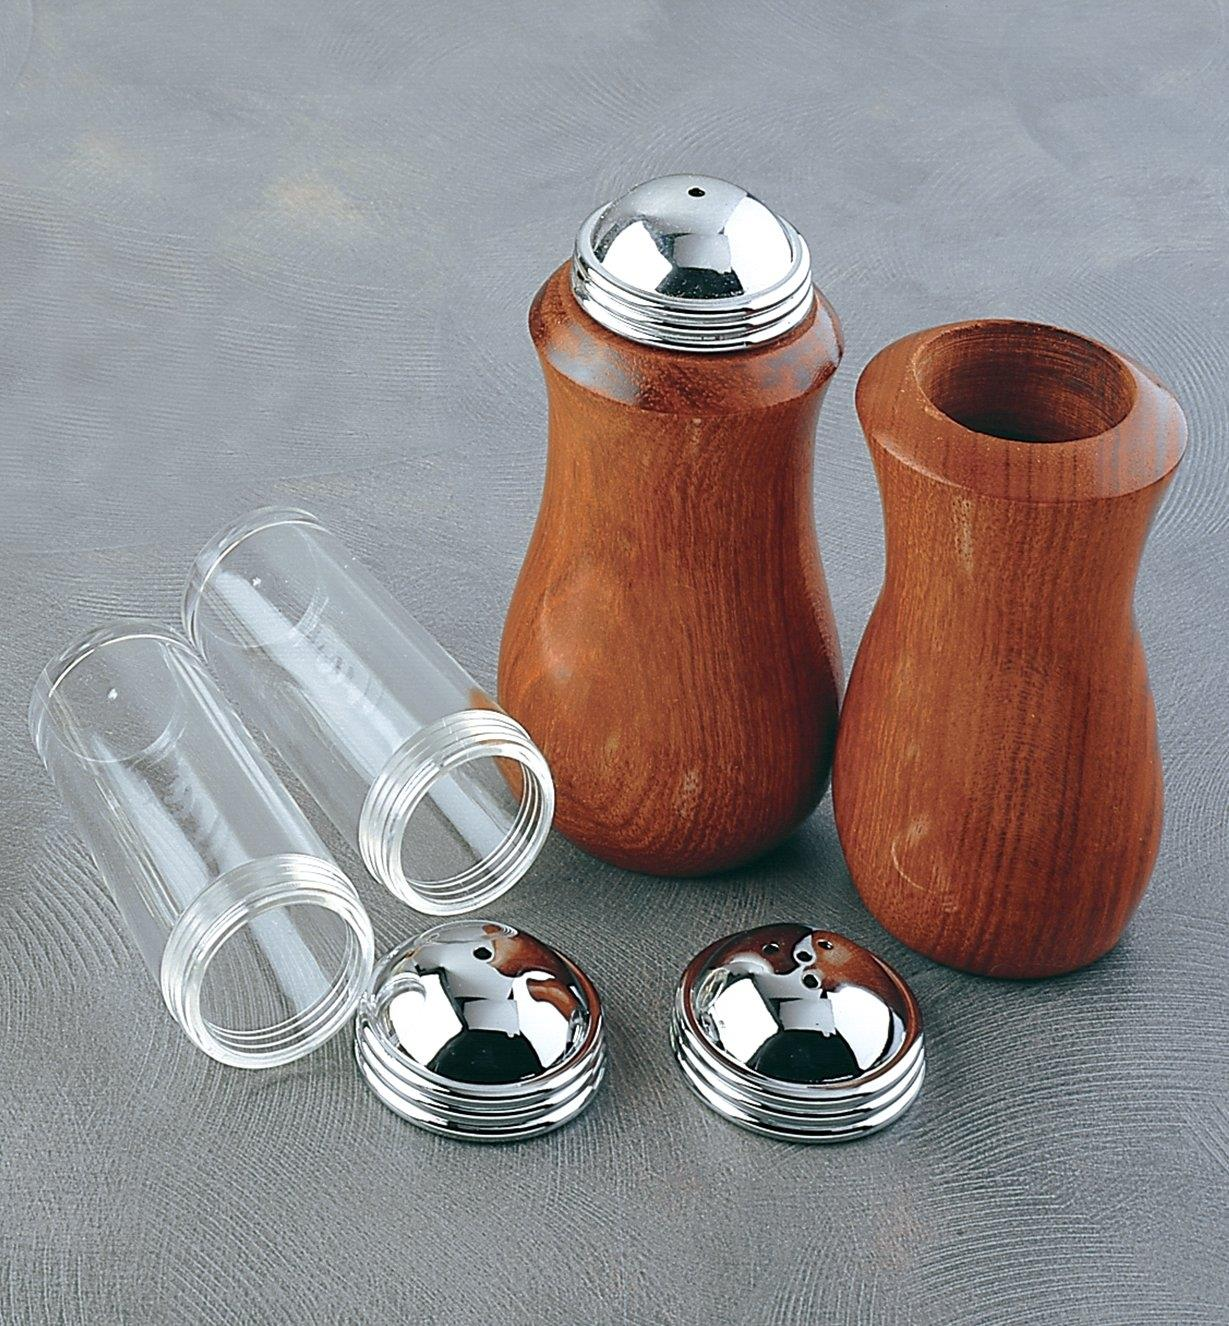 88K8158 - Salt & Pepper Shaker Kit